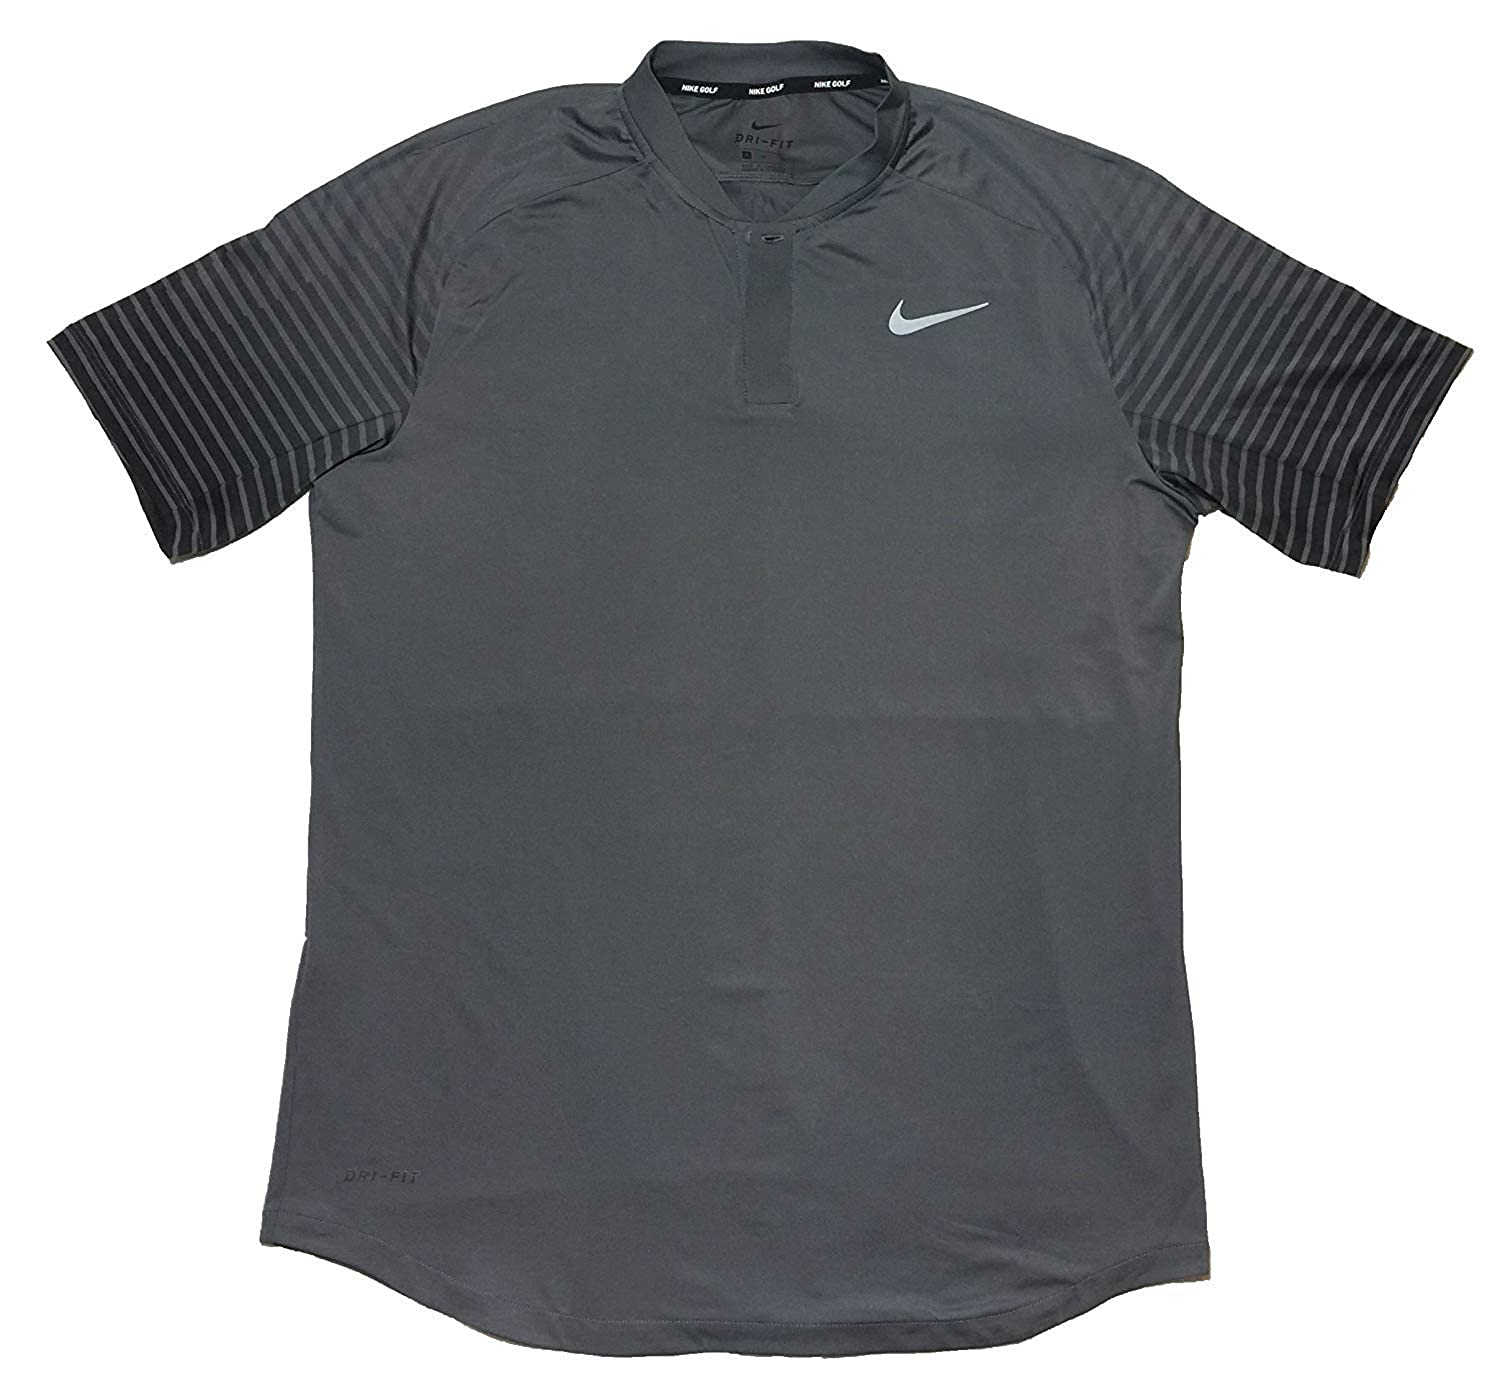 21d0df42 Amazon.com: Nike Men's Gold Dri-Fit TW Tiger Woods Cooling Graphic Polo  (Medium): Clothing